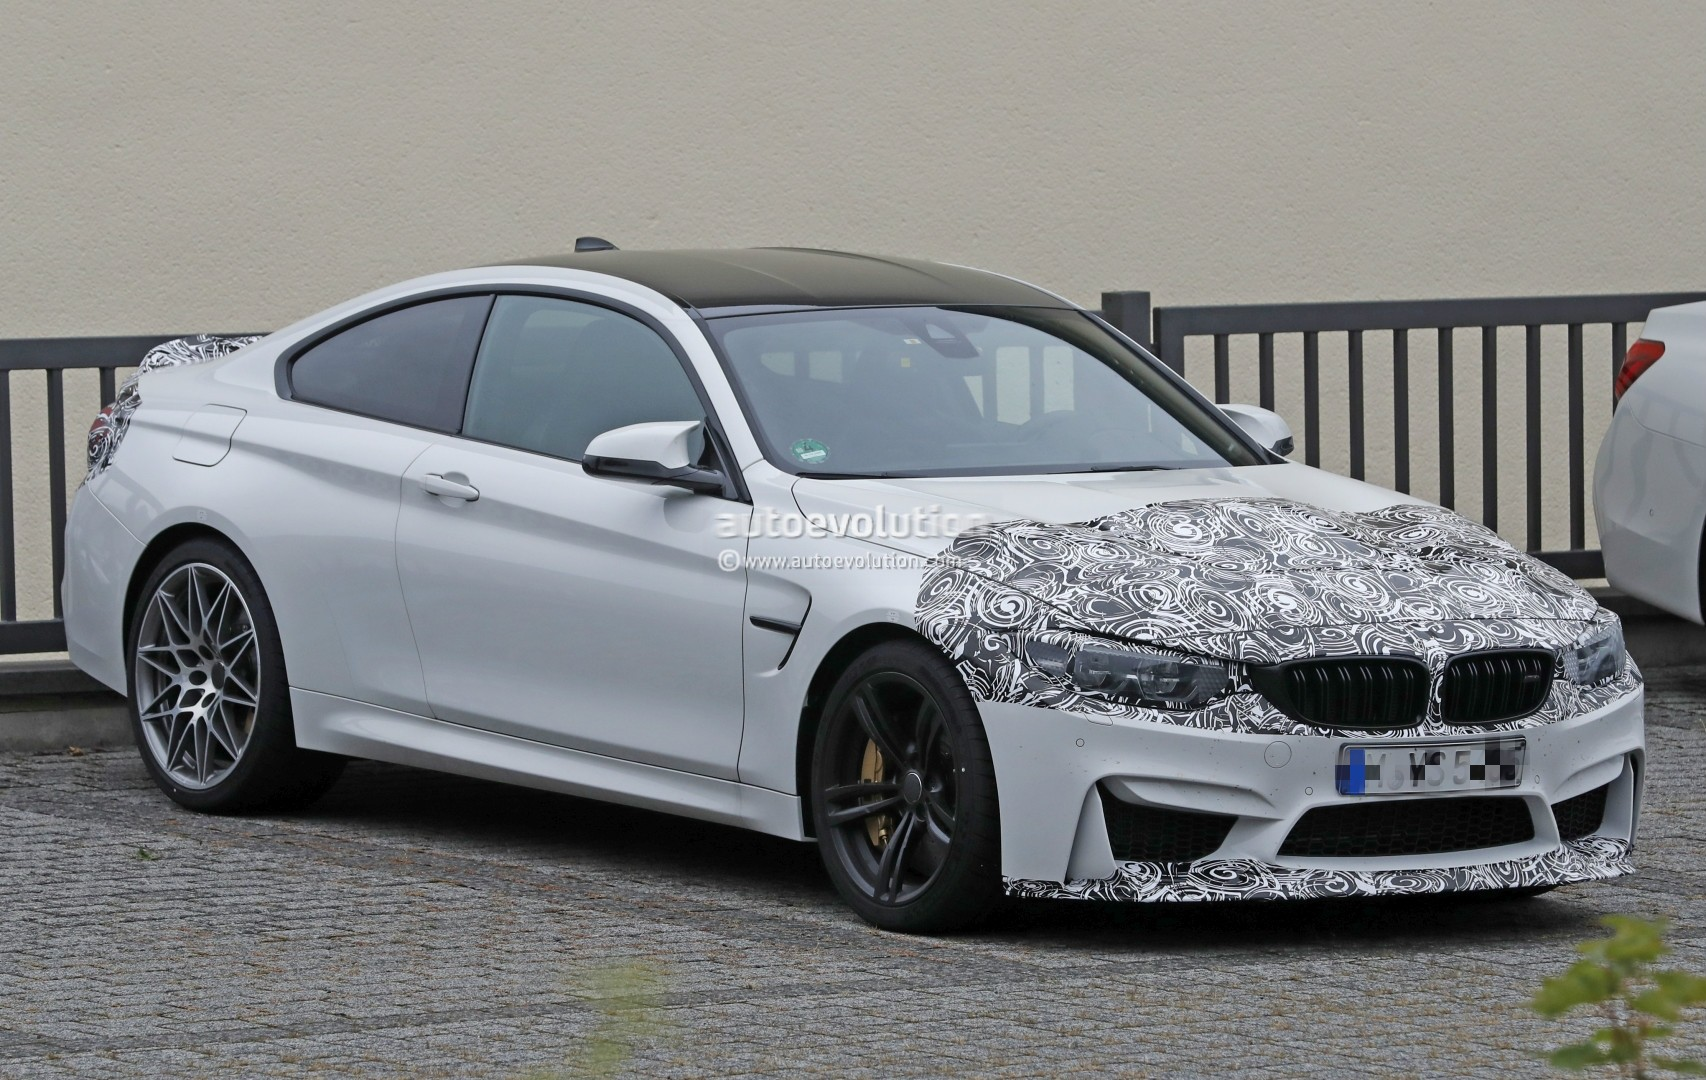 2018 Bmw M4 Facelift Cs Special Edition Spied Shows